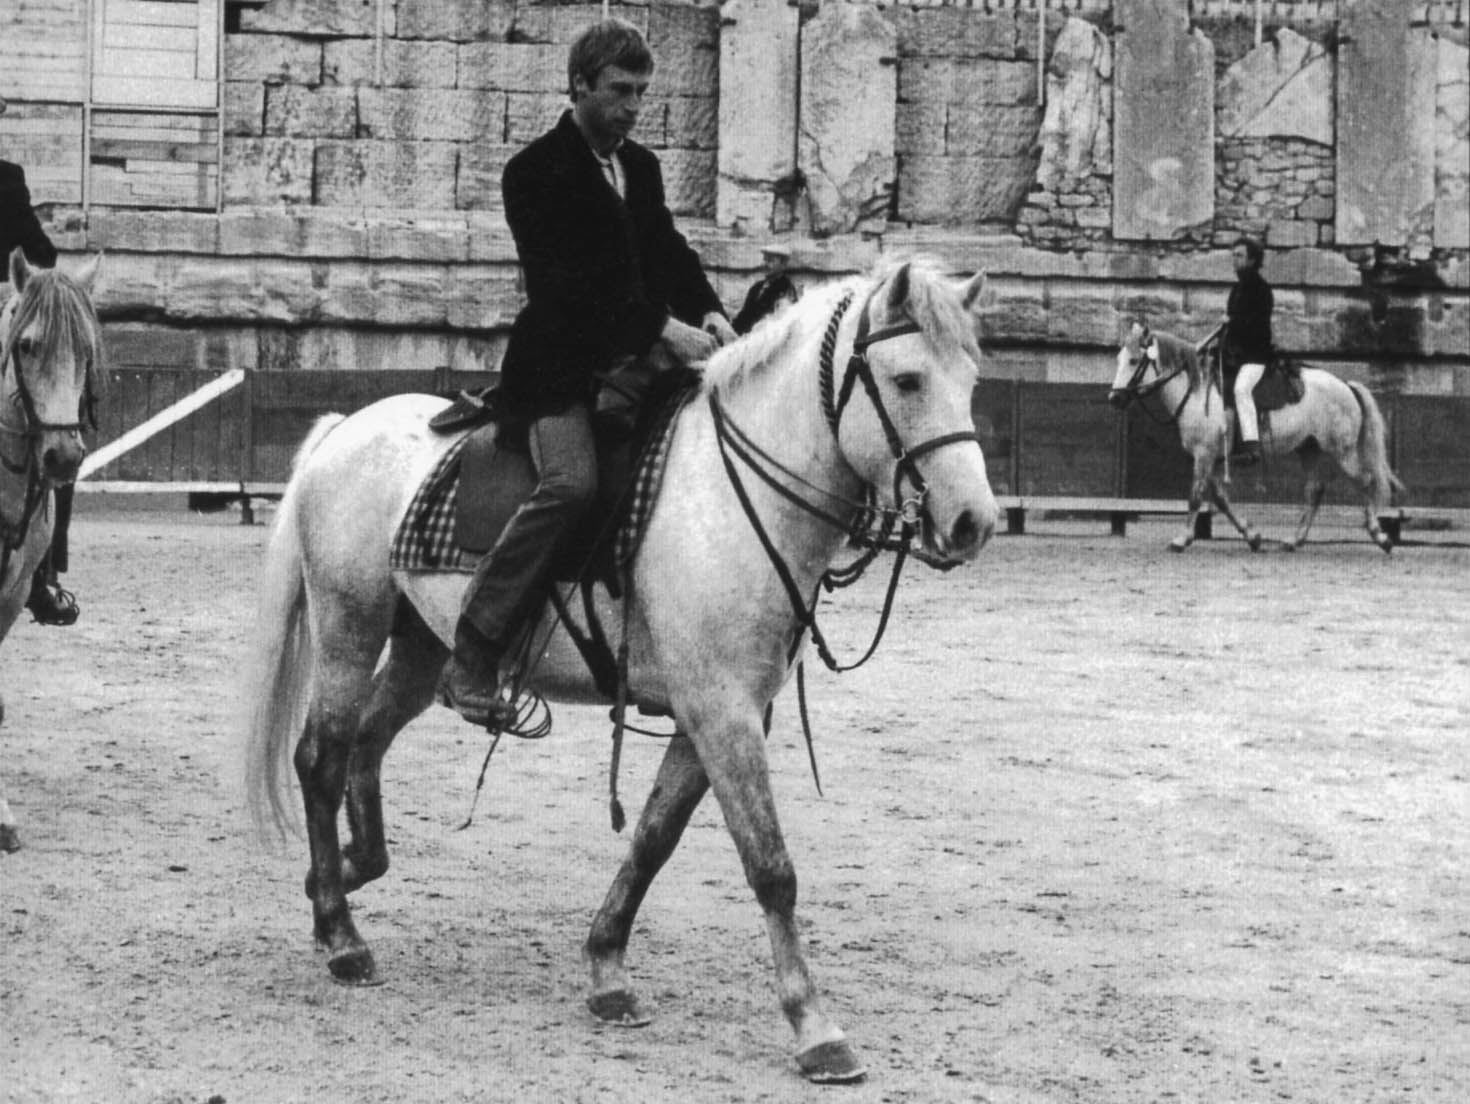 Bernard Roche in the Arenas of Arles